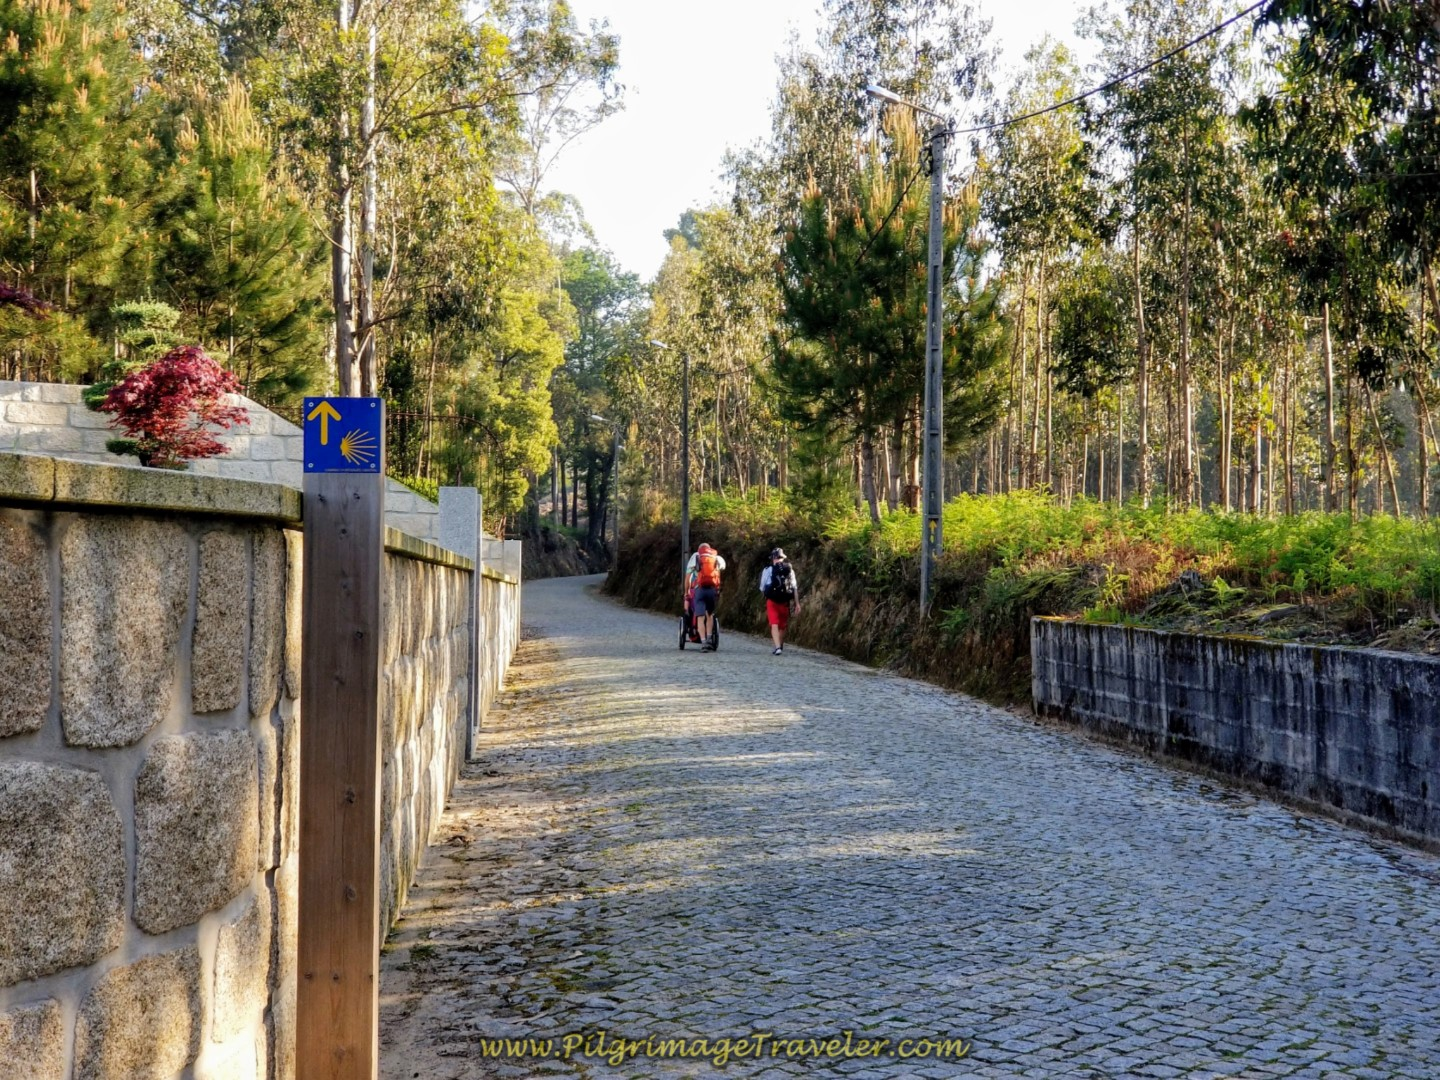 Elevation Eases But Still Up on Cobblestone